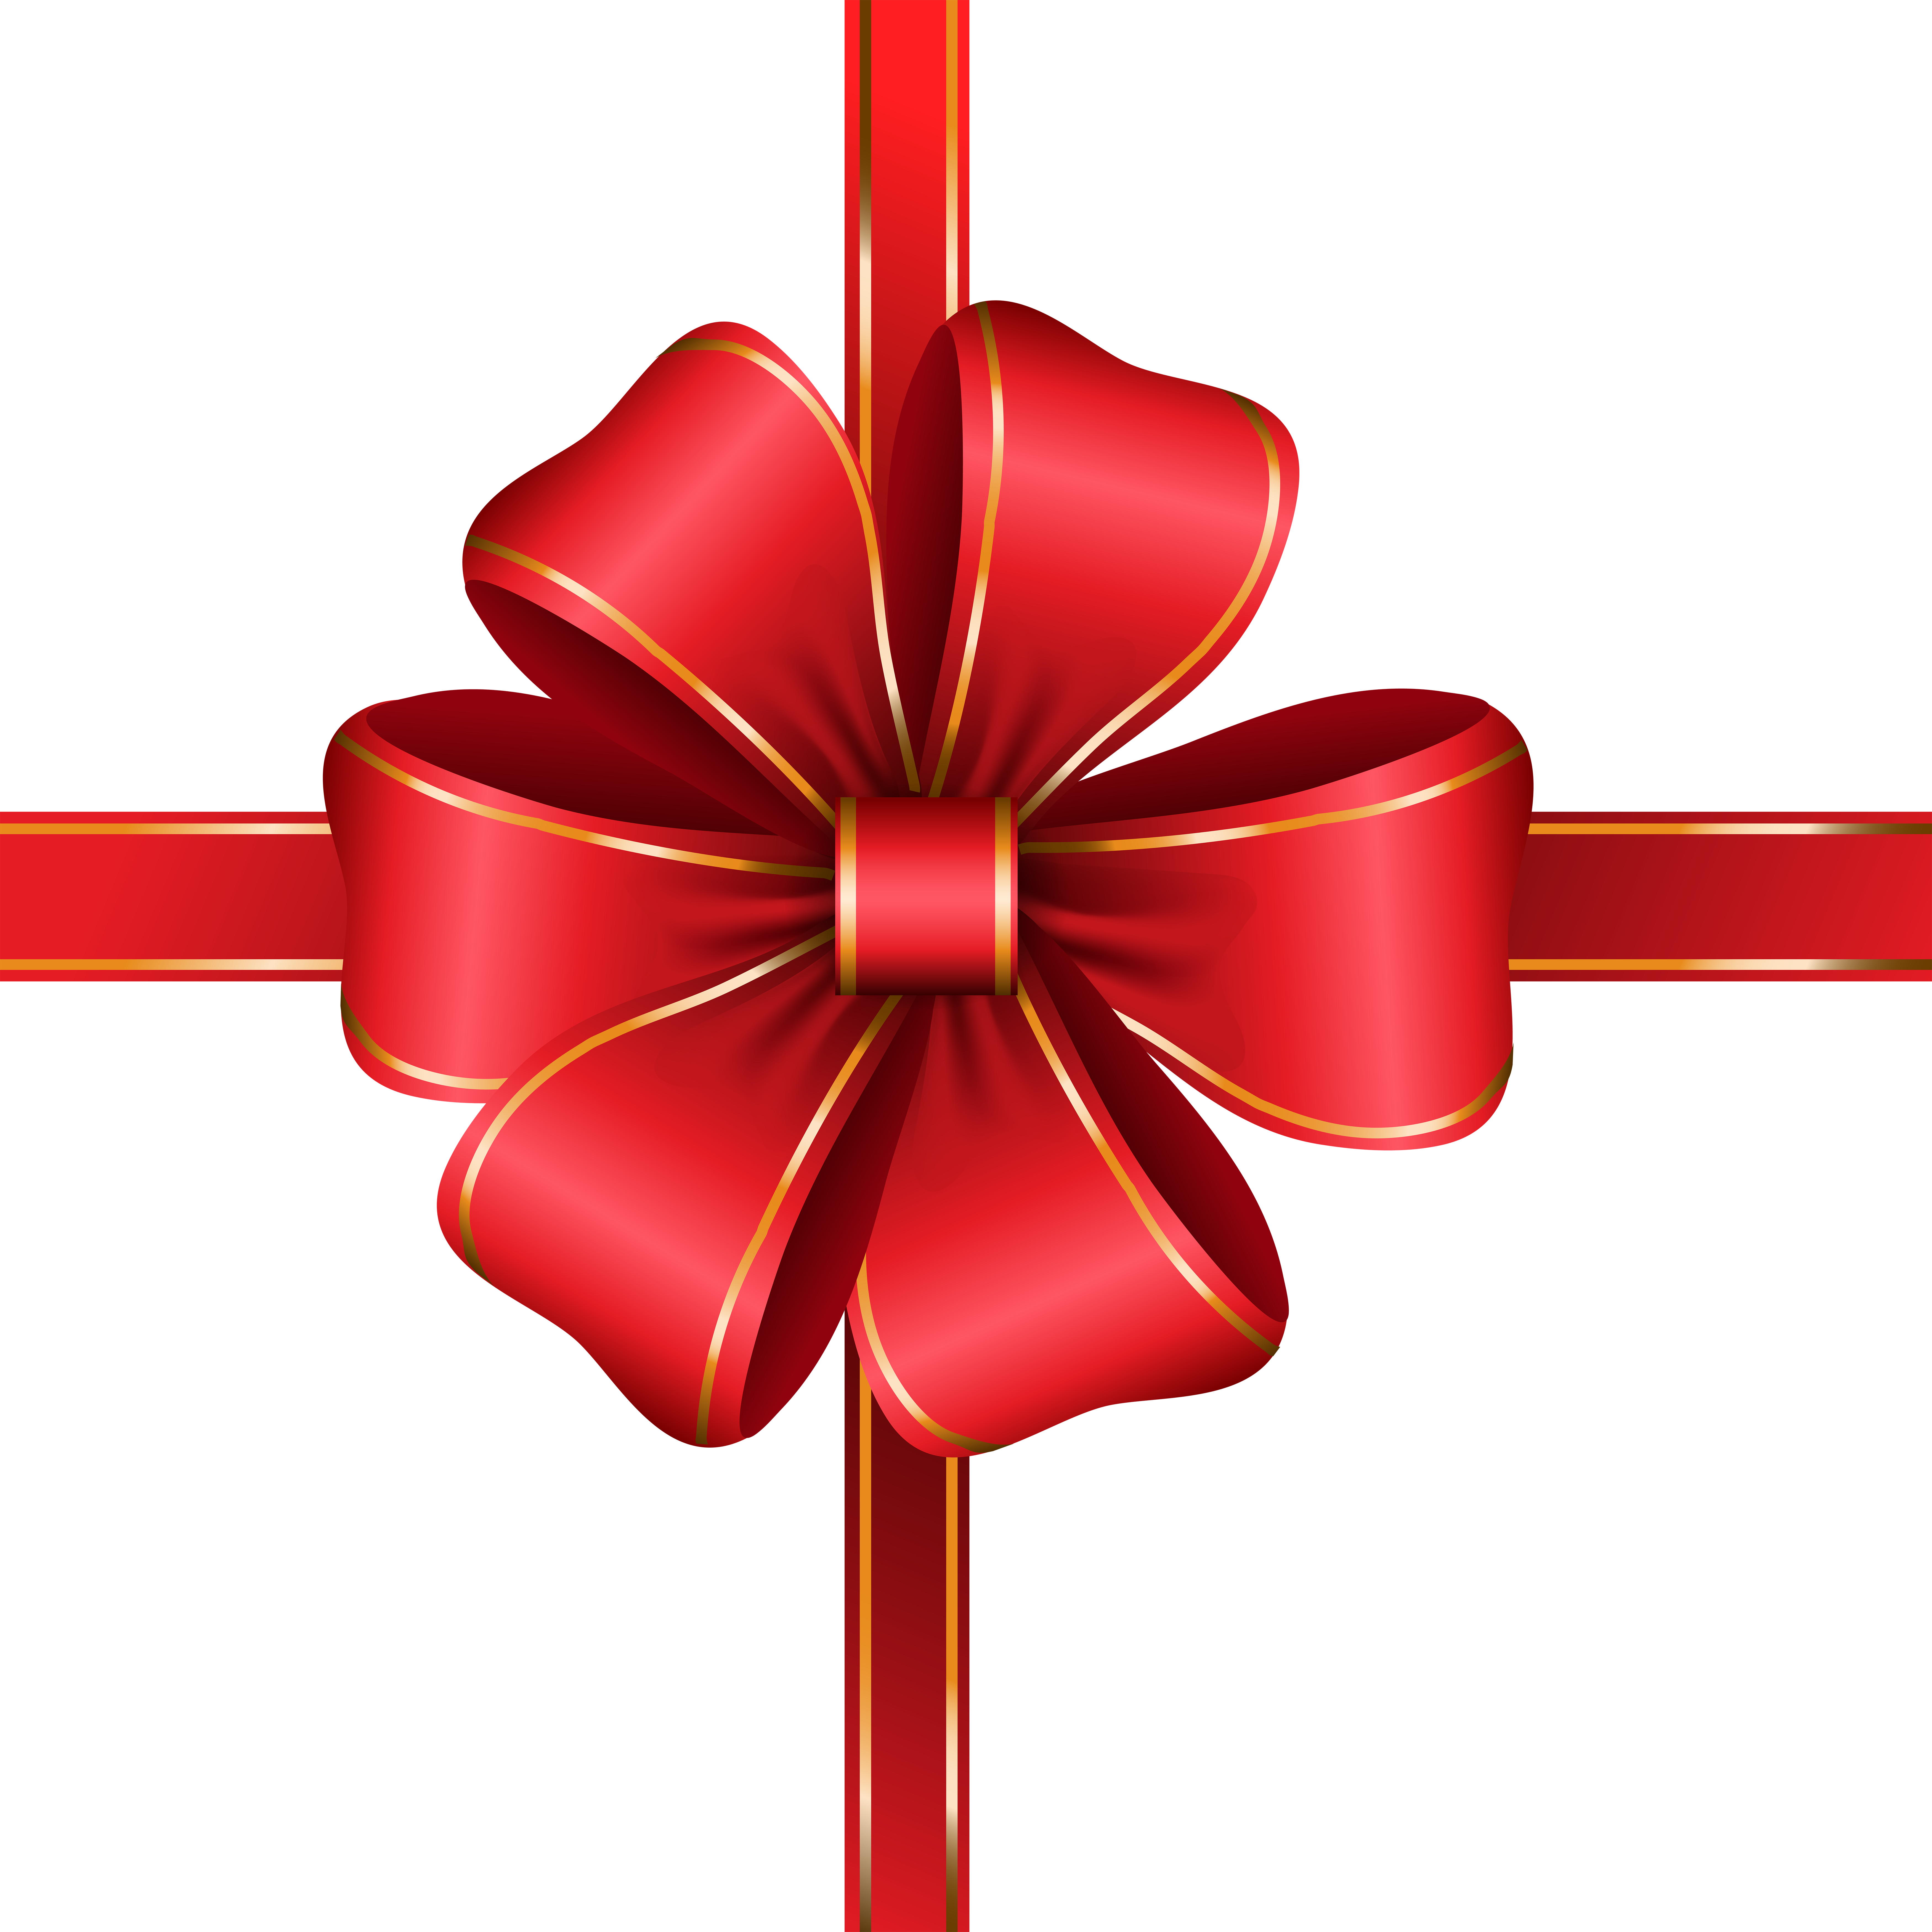 Decorative Red Bow Transparent Png Clip Art Image Gallery Yopriceville High Quality Images And Transpare Clip Art Christmas Ornament Pattern Free Clip Art